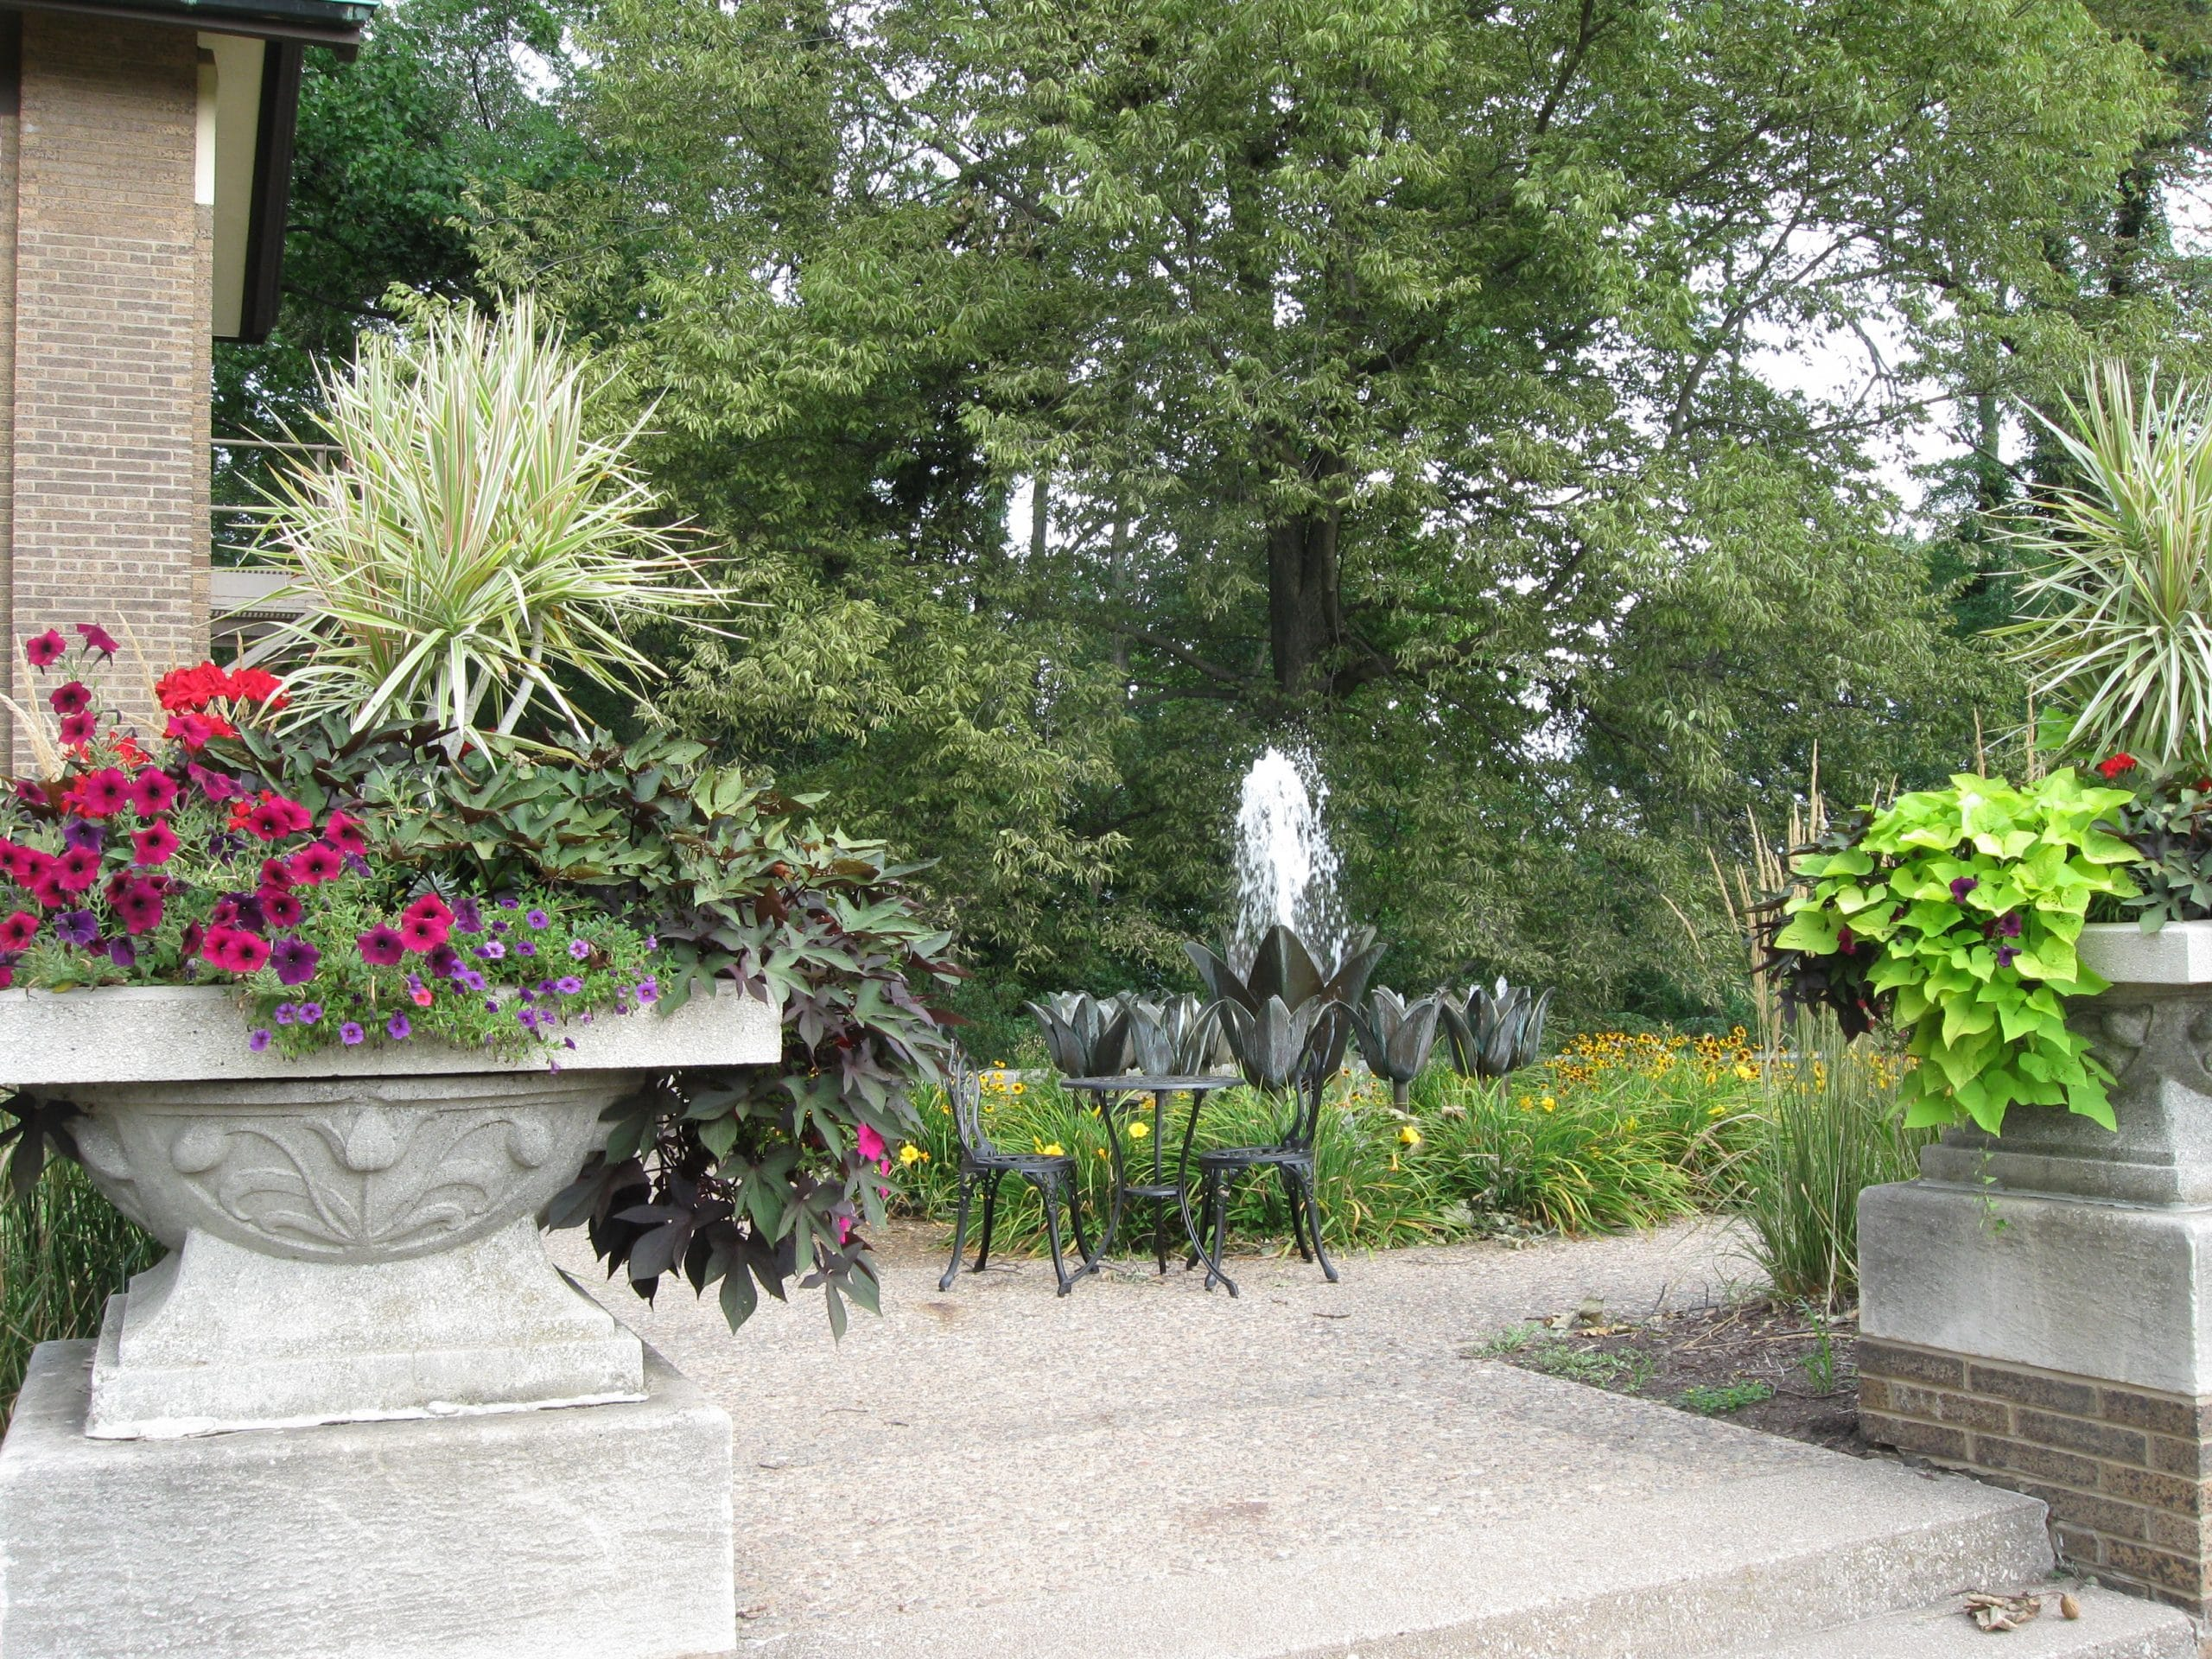 Terrace Garden at the Hauberg Estate